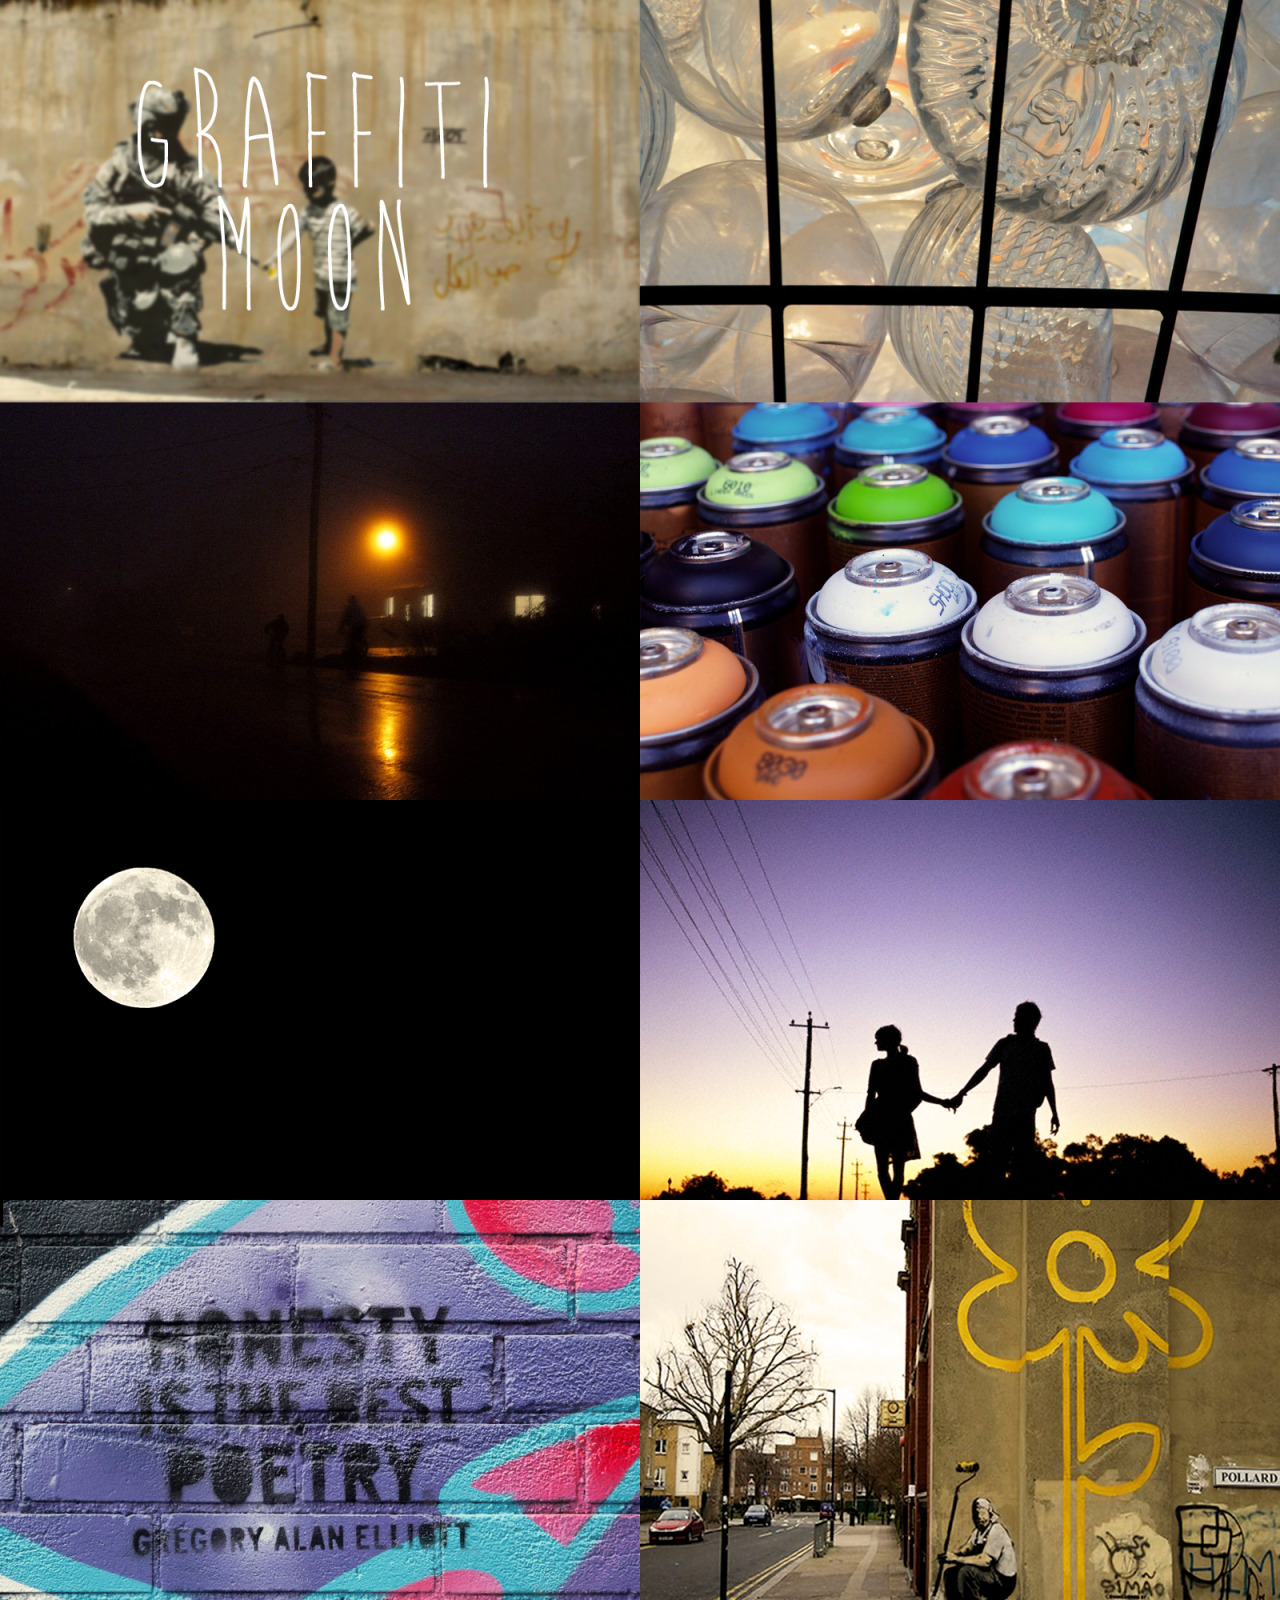 The Art And Poetry Of Graffiti Moon